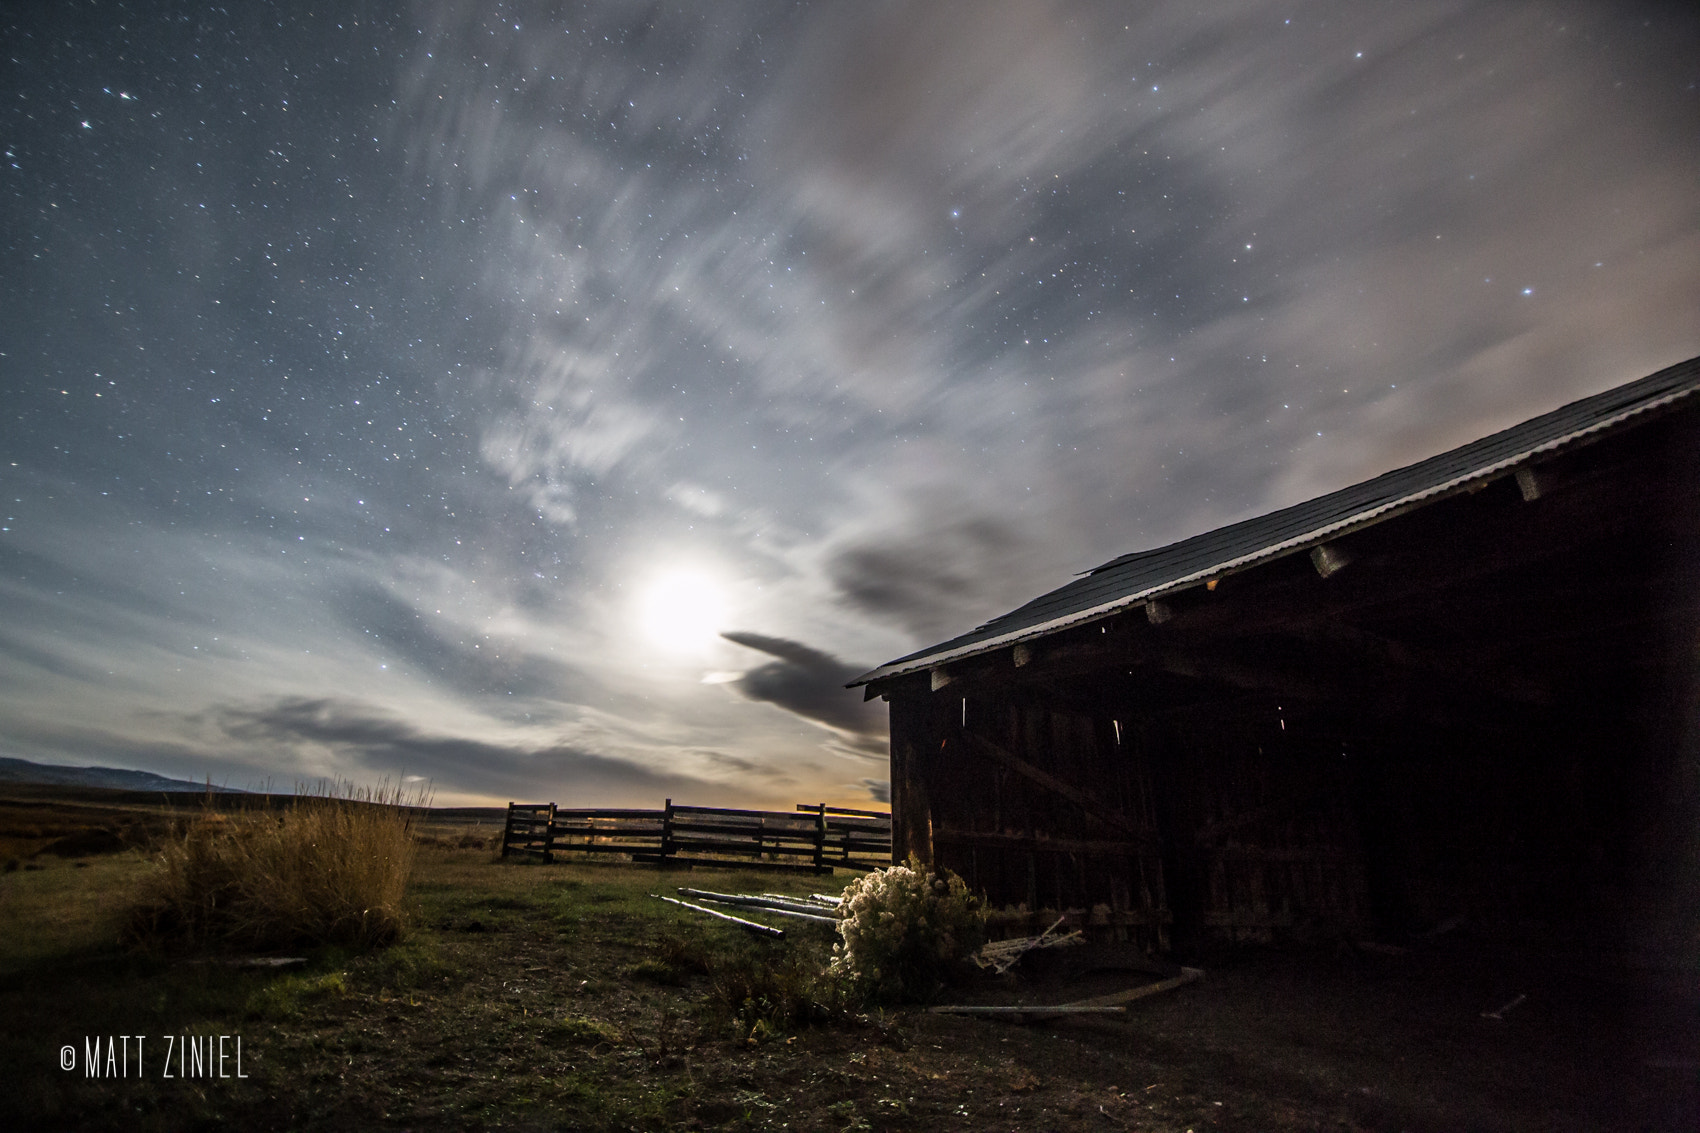 Photograph Ranch at Night by Matt Ziniel on 500px